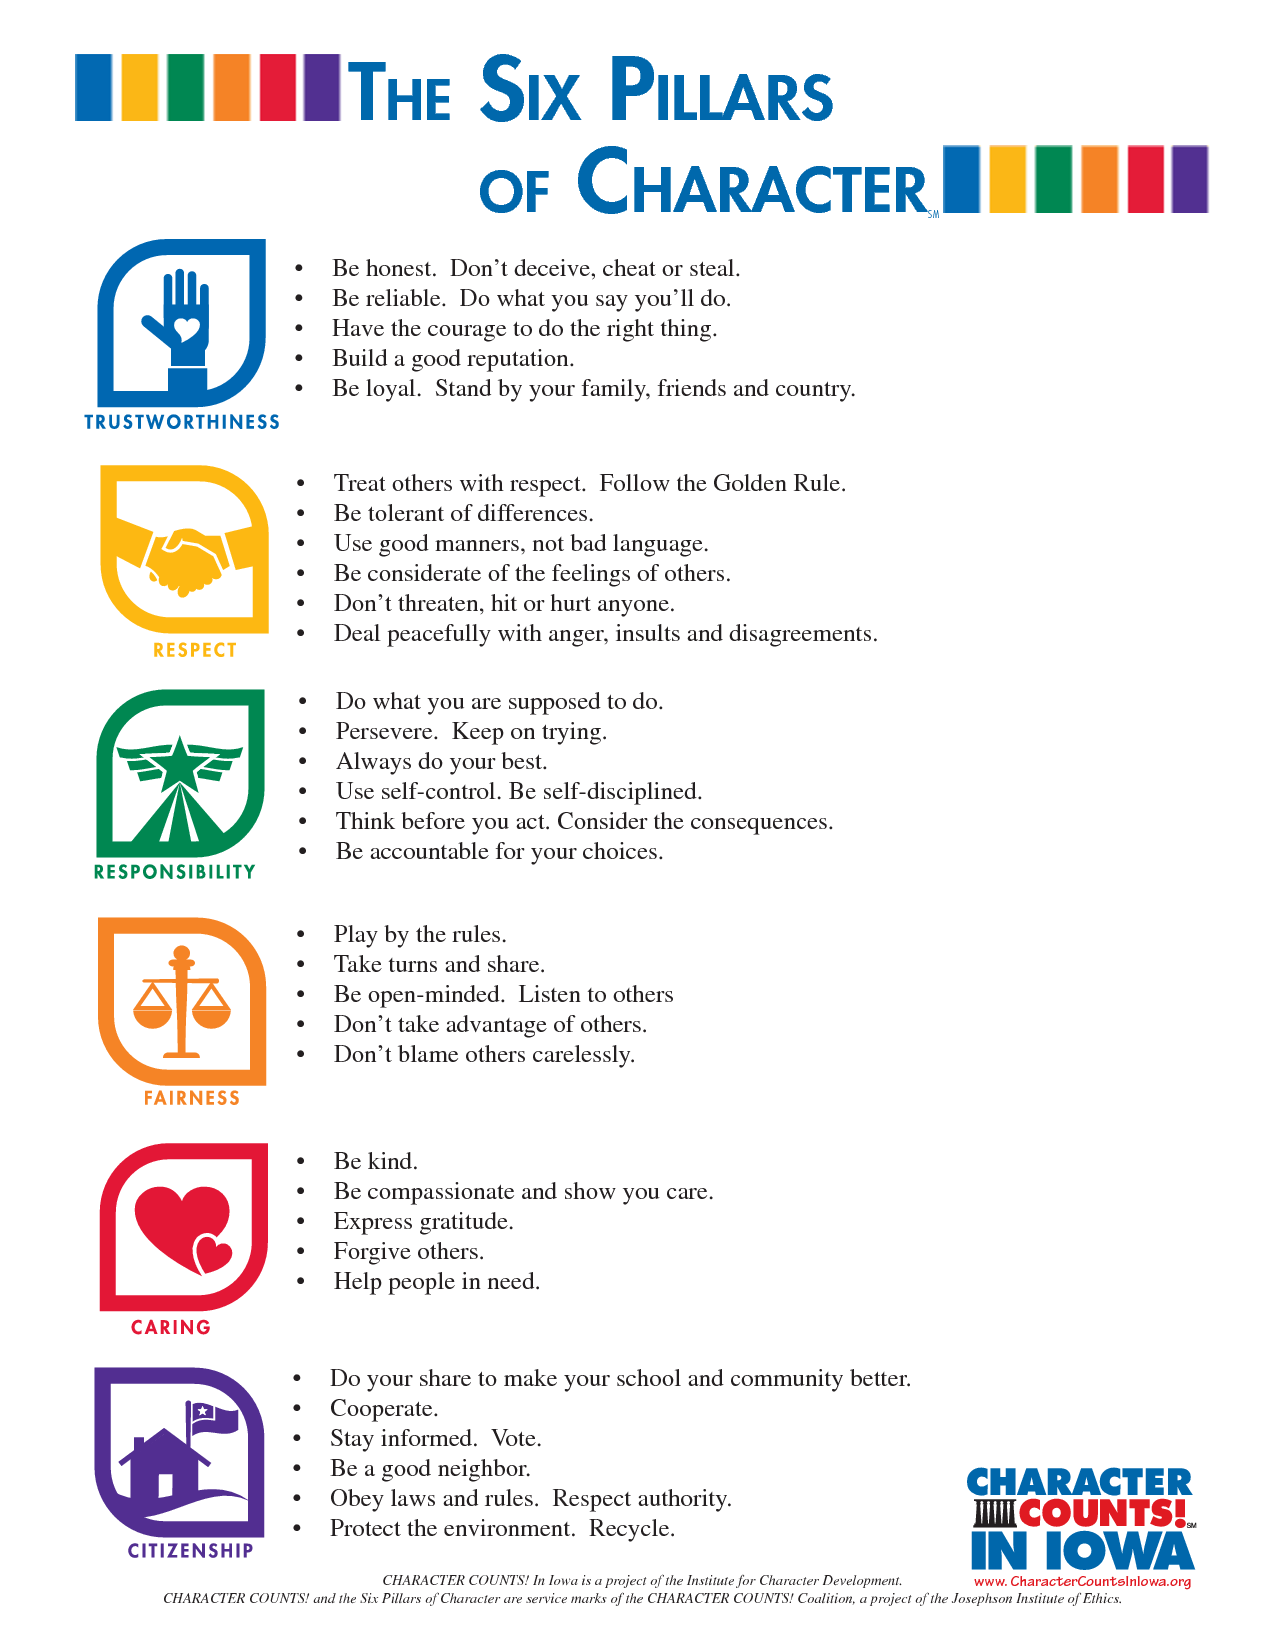 Free Worksheets 6 pillars of character worksheets : Worksheet. Six Pillars Of Character Worksheets. Caytailoc ...